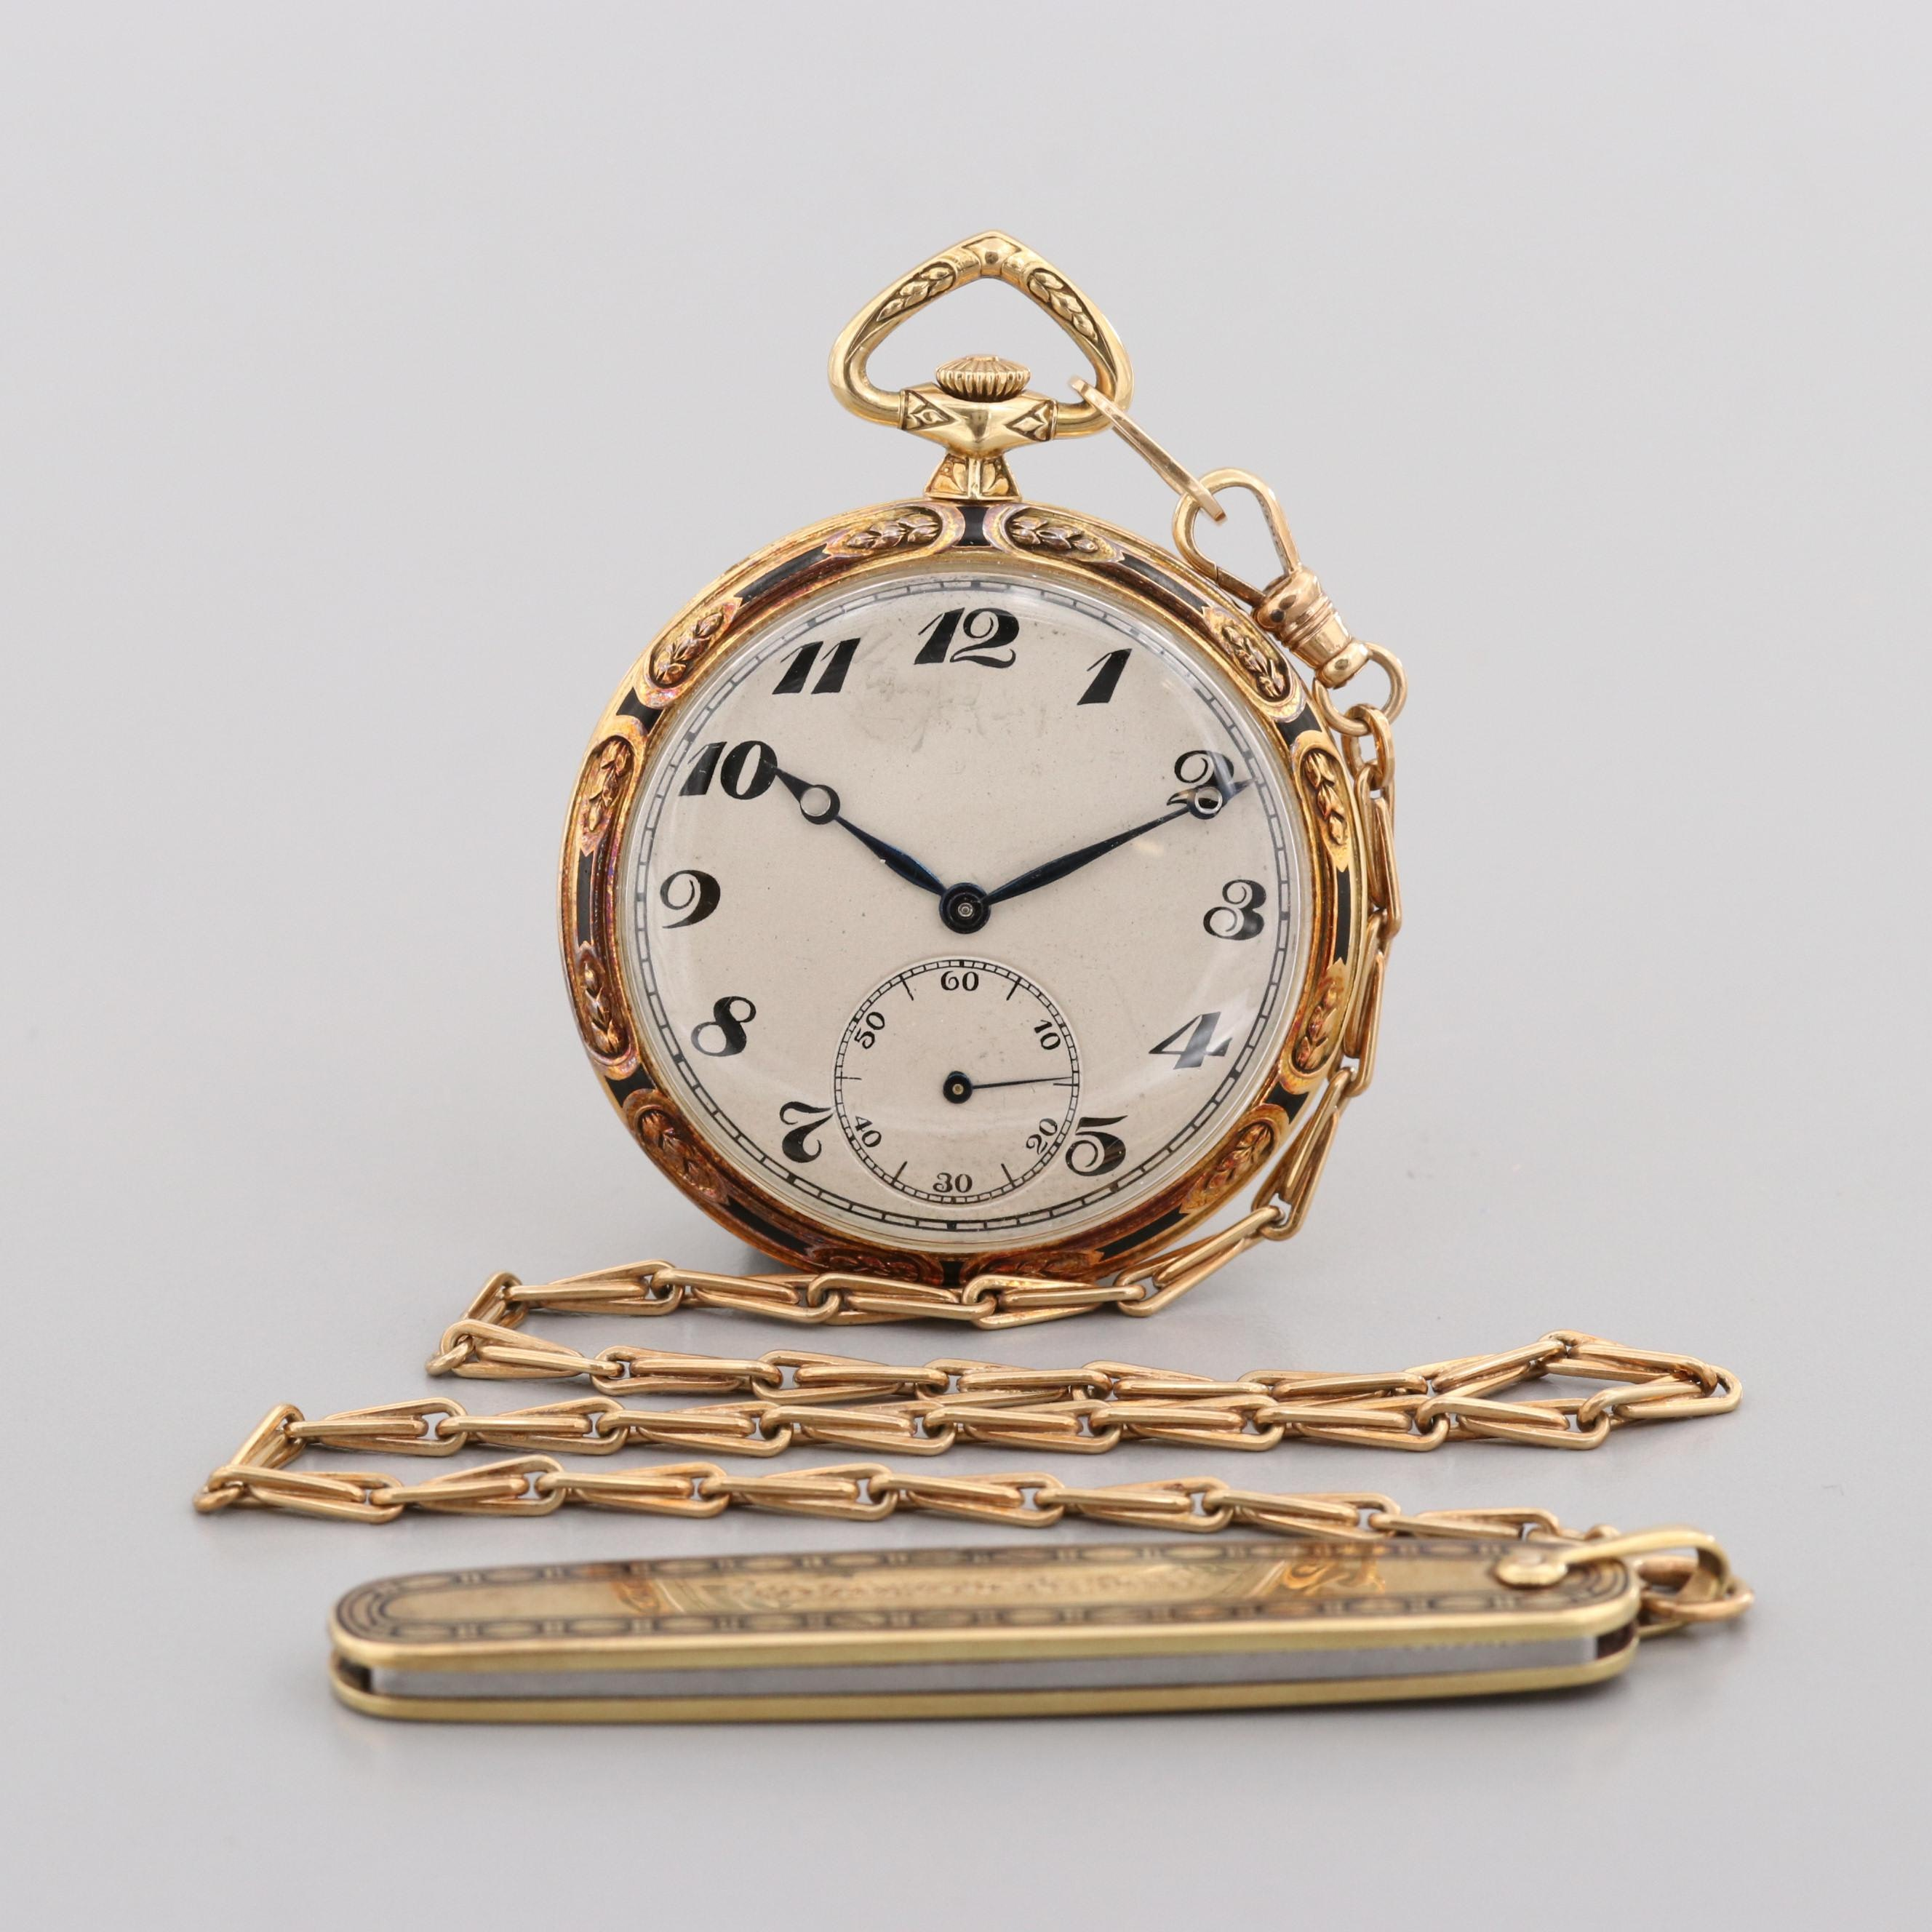 Vintage C.H. Meylan 18K Yellow Gold Pocket Watch With 14K Fob and Pocket Knife